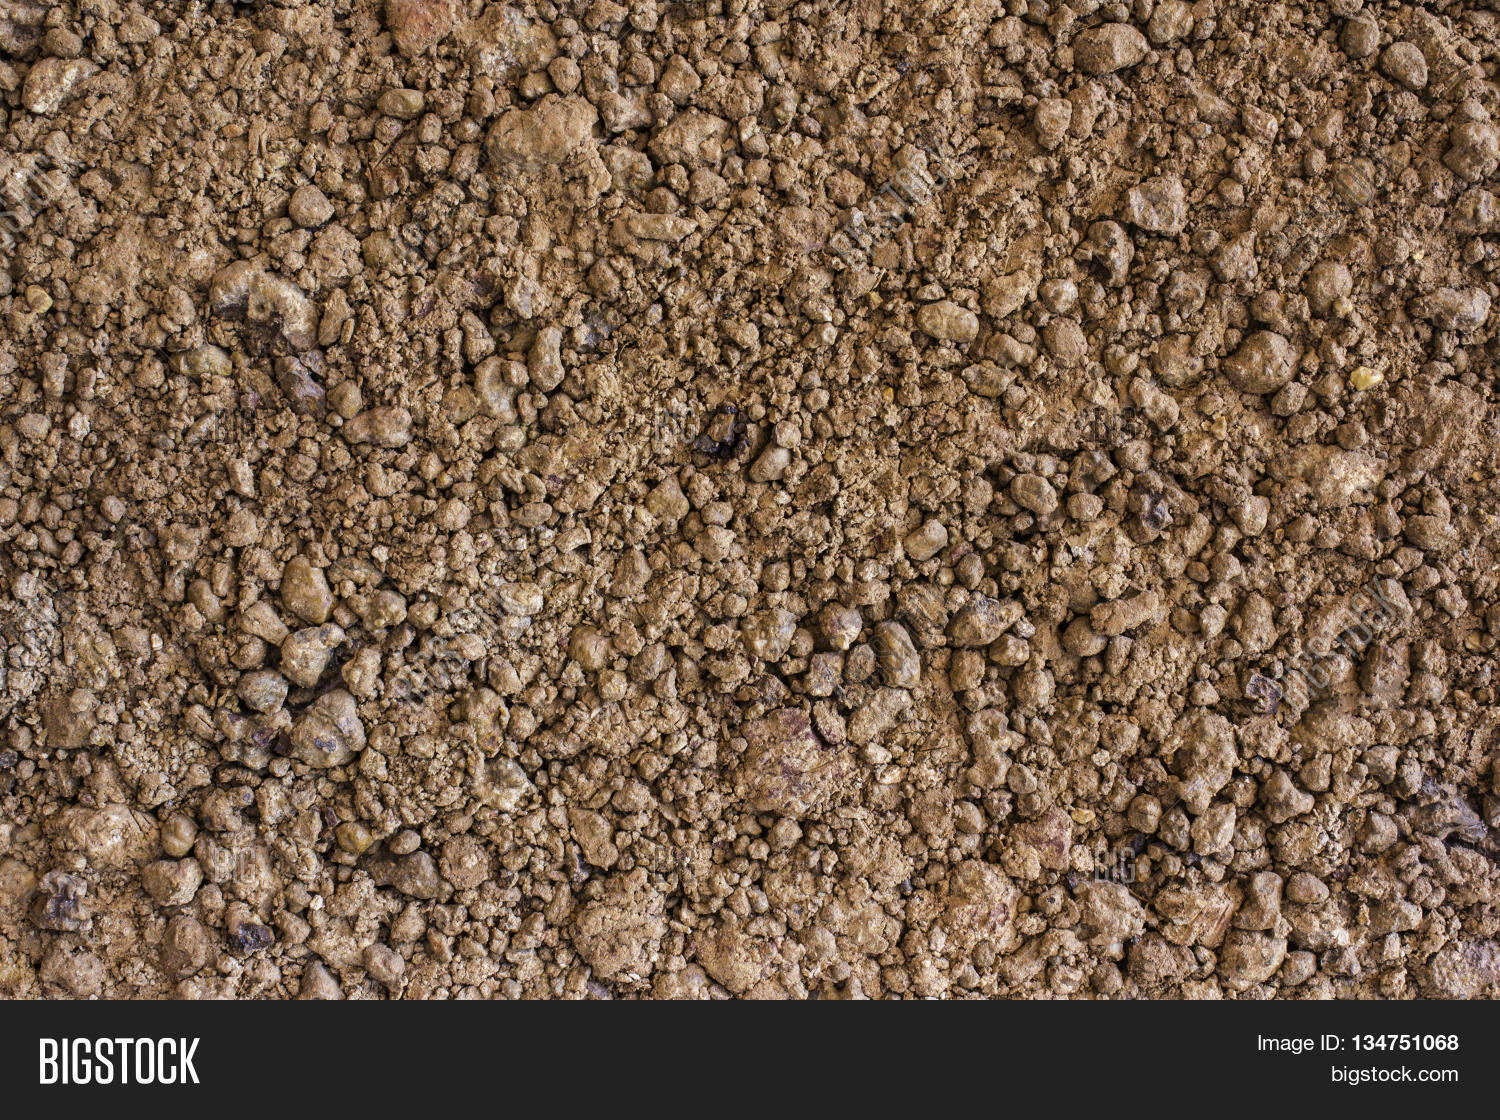 Soil natural clay minerals image photo bigstock for What are soil minerals